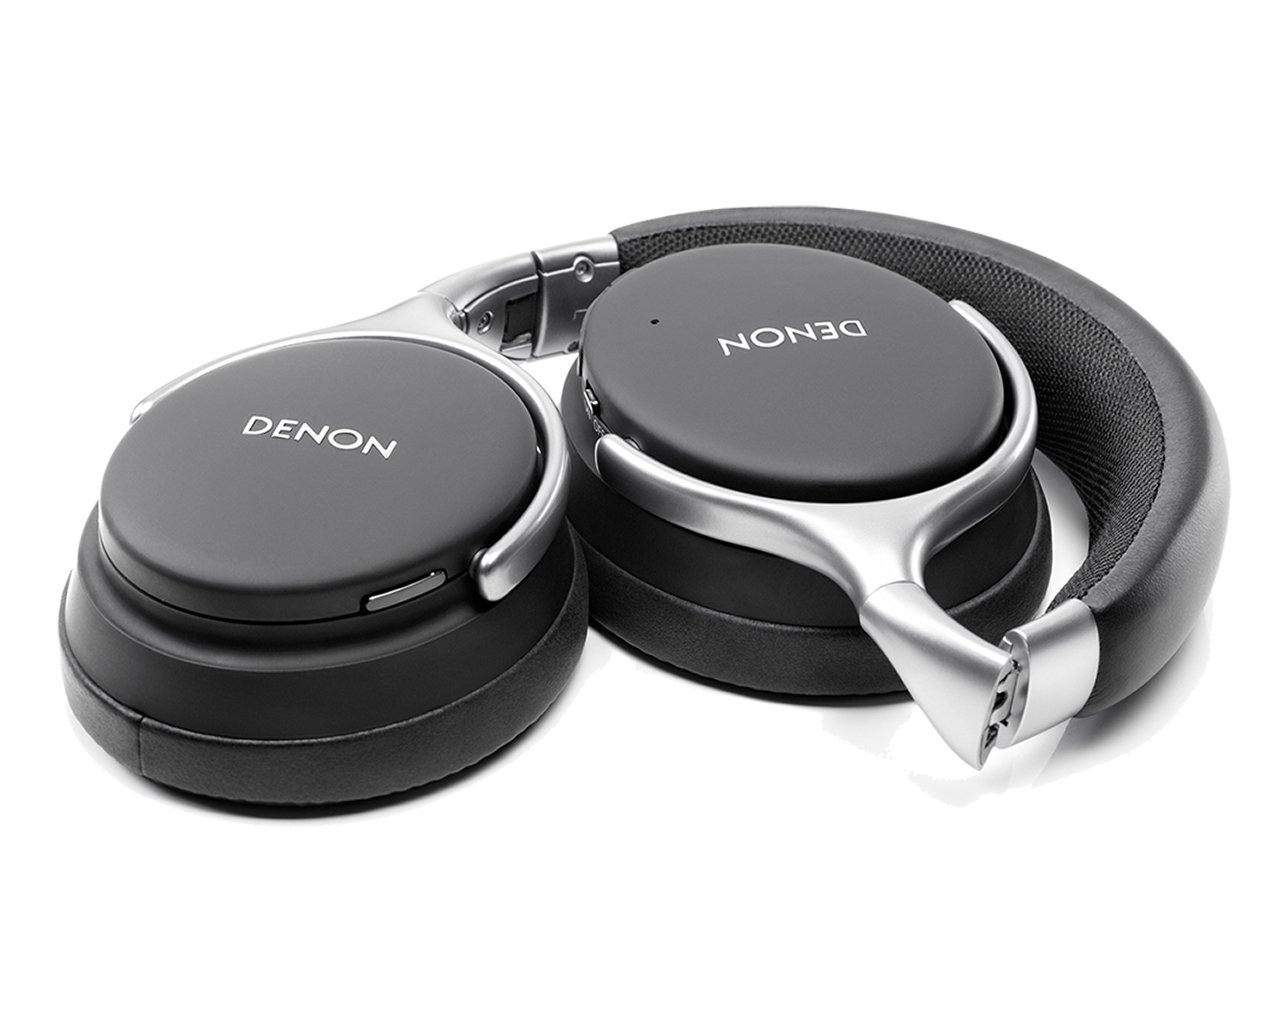 Denon AHGC20 Wireless best Noise Cancelling Headphones